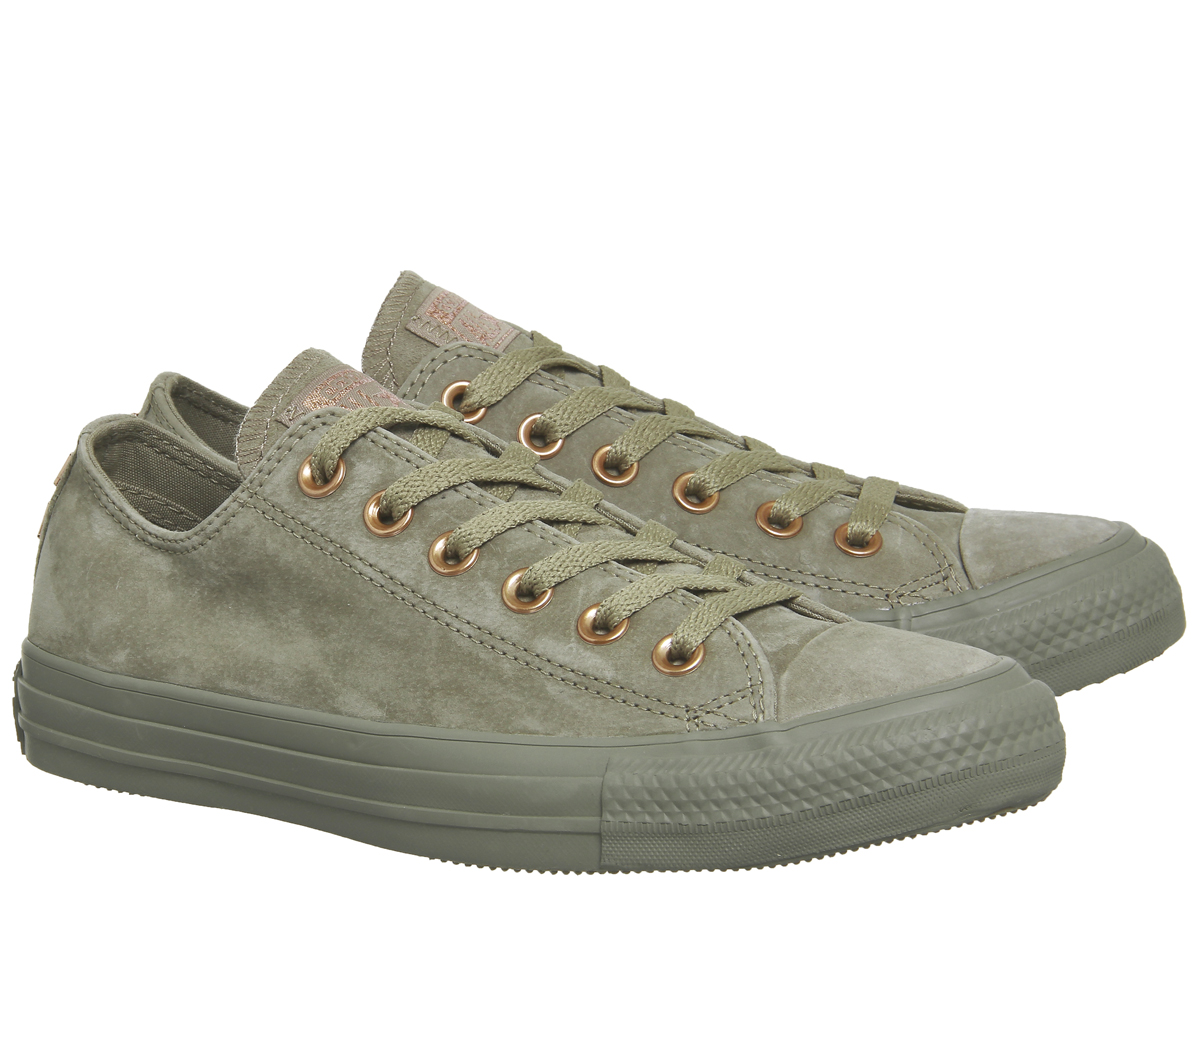 DONNA CONVERSE ALL STAR BASSA IN PELLE KHAKI BORCHIA ESCLUSIVO